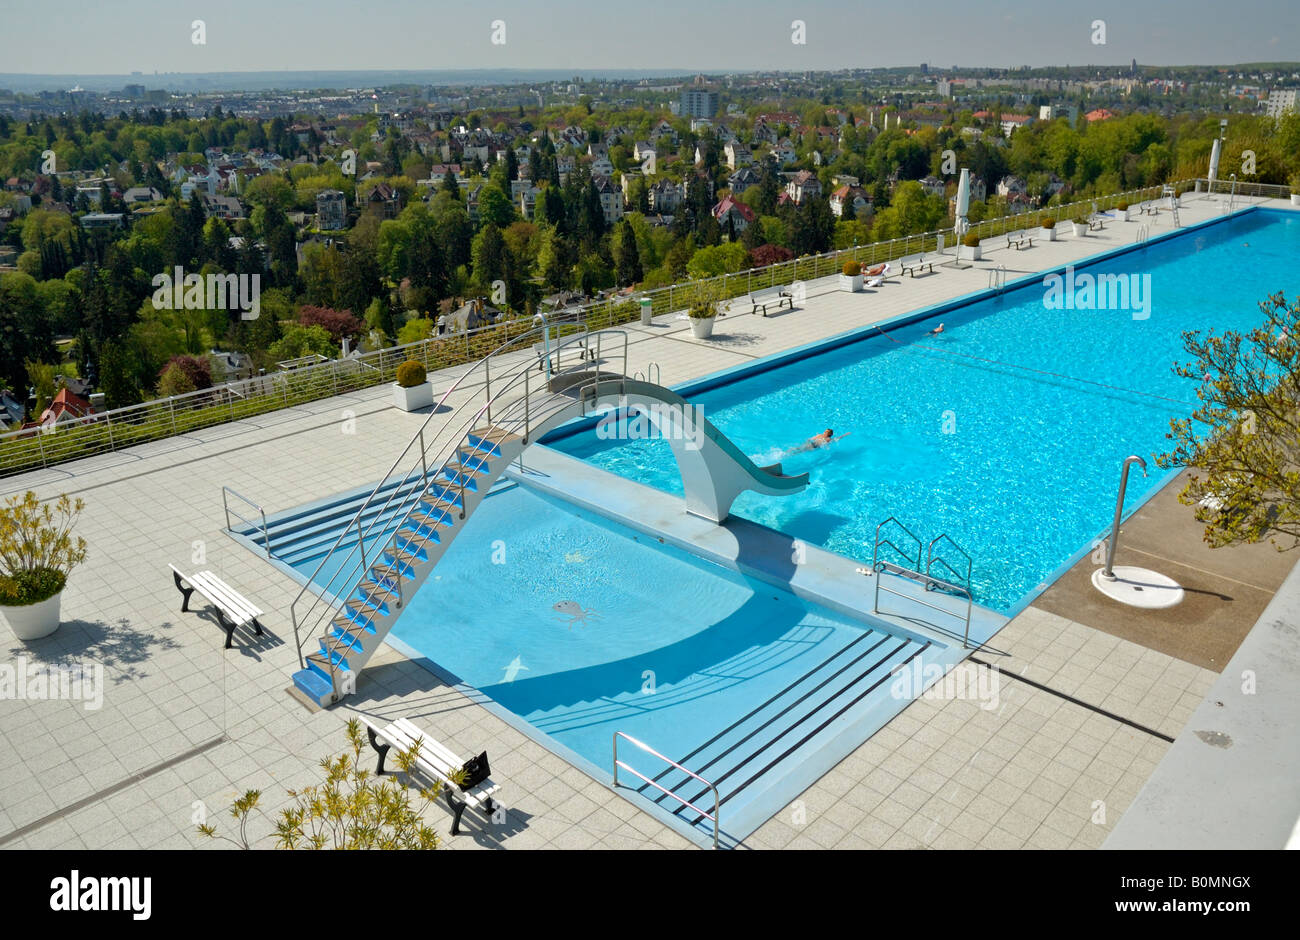 Opel Bad Swimming Pool Above The Villa District Of Wiesbaden Stock Photo Royalty Free Image